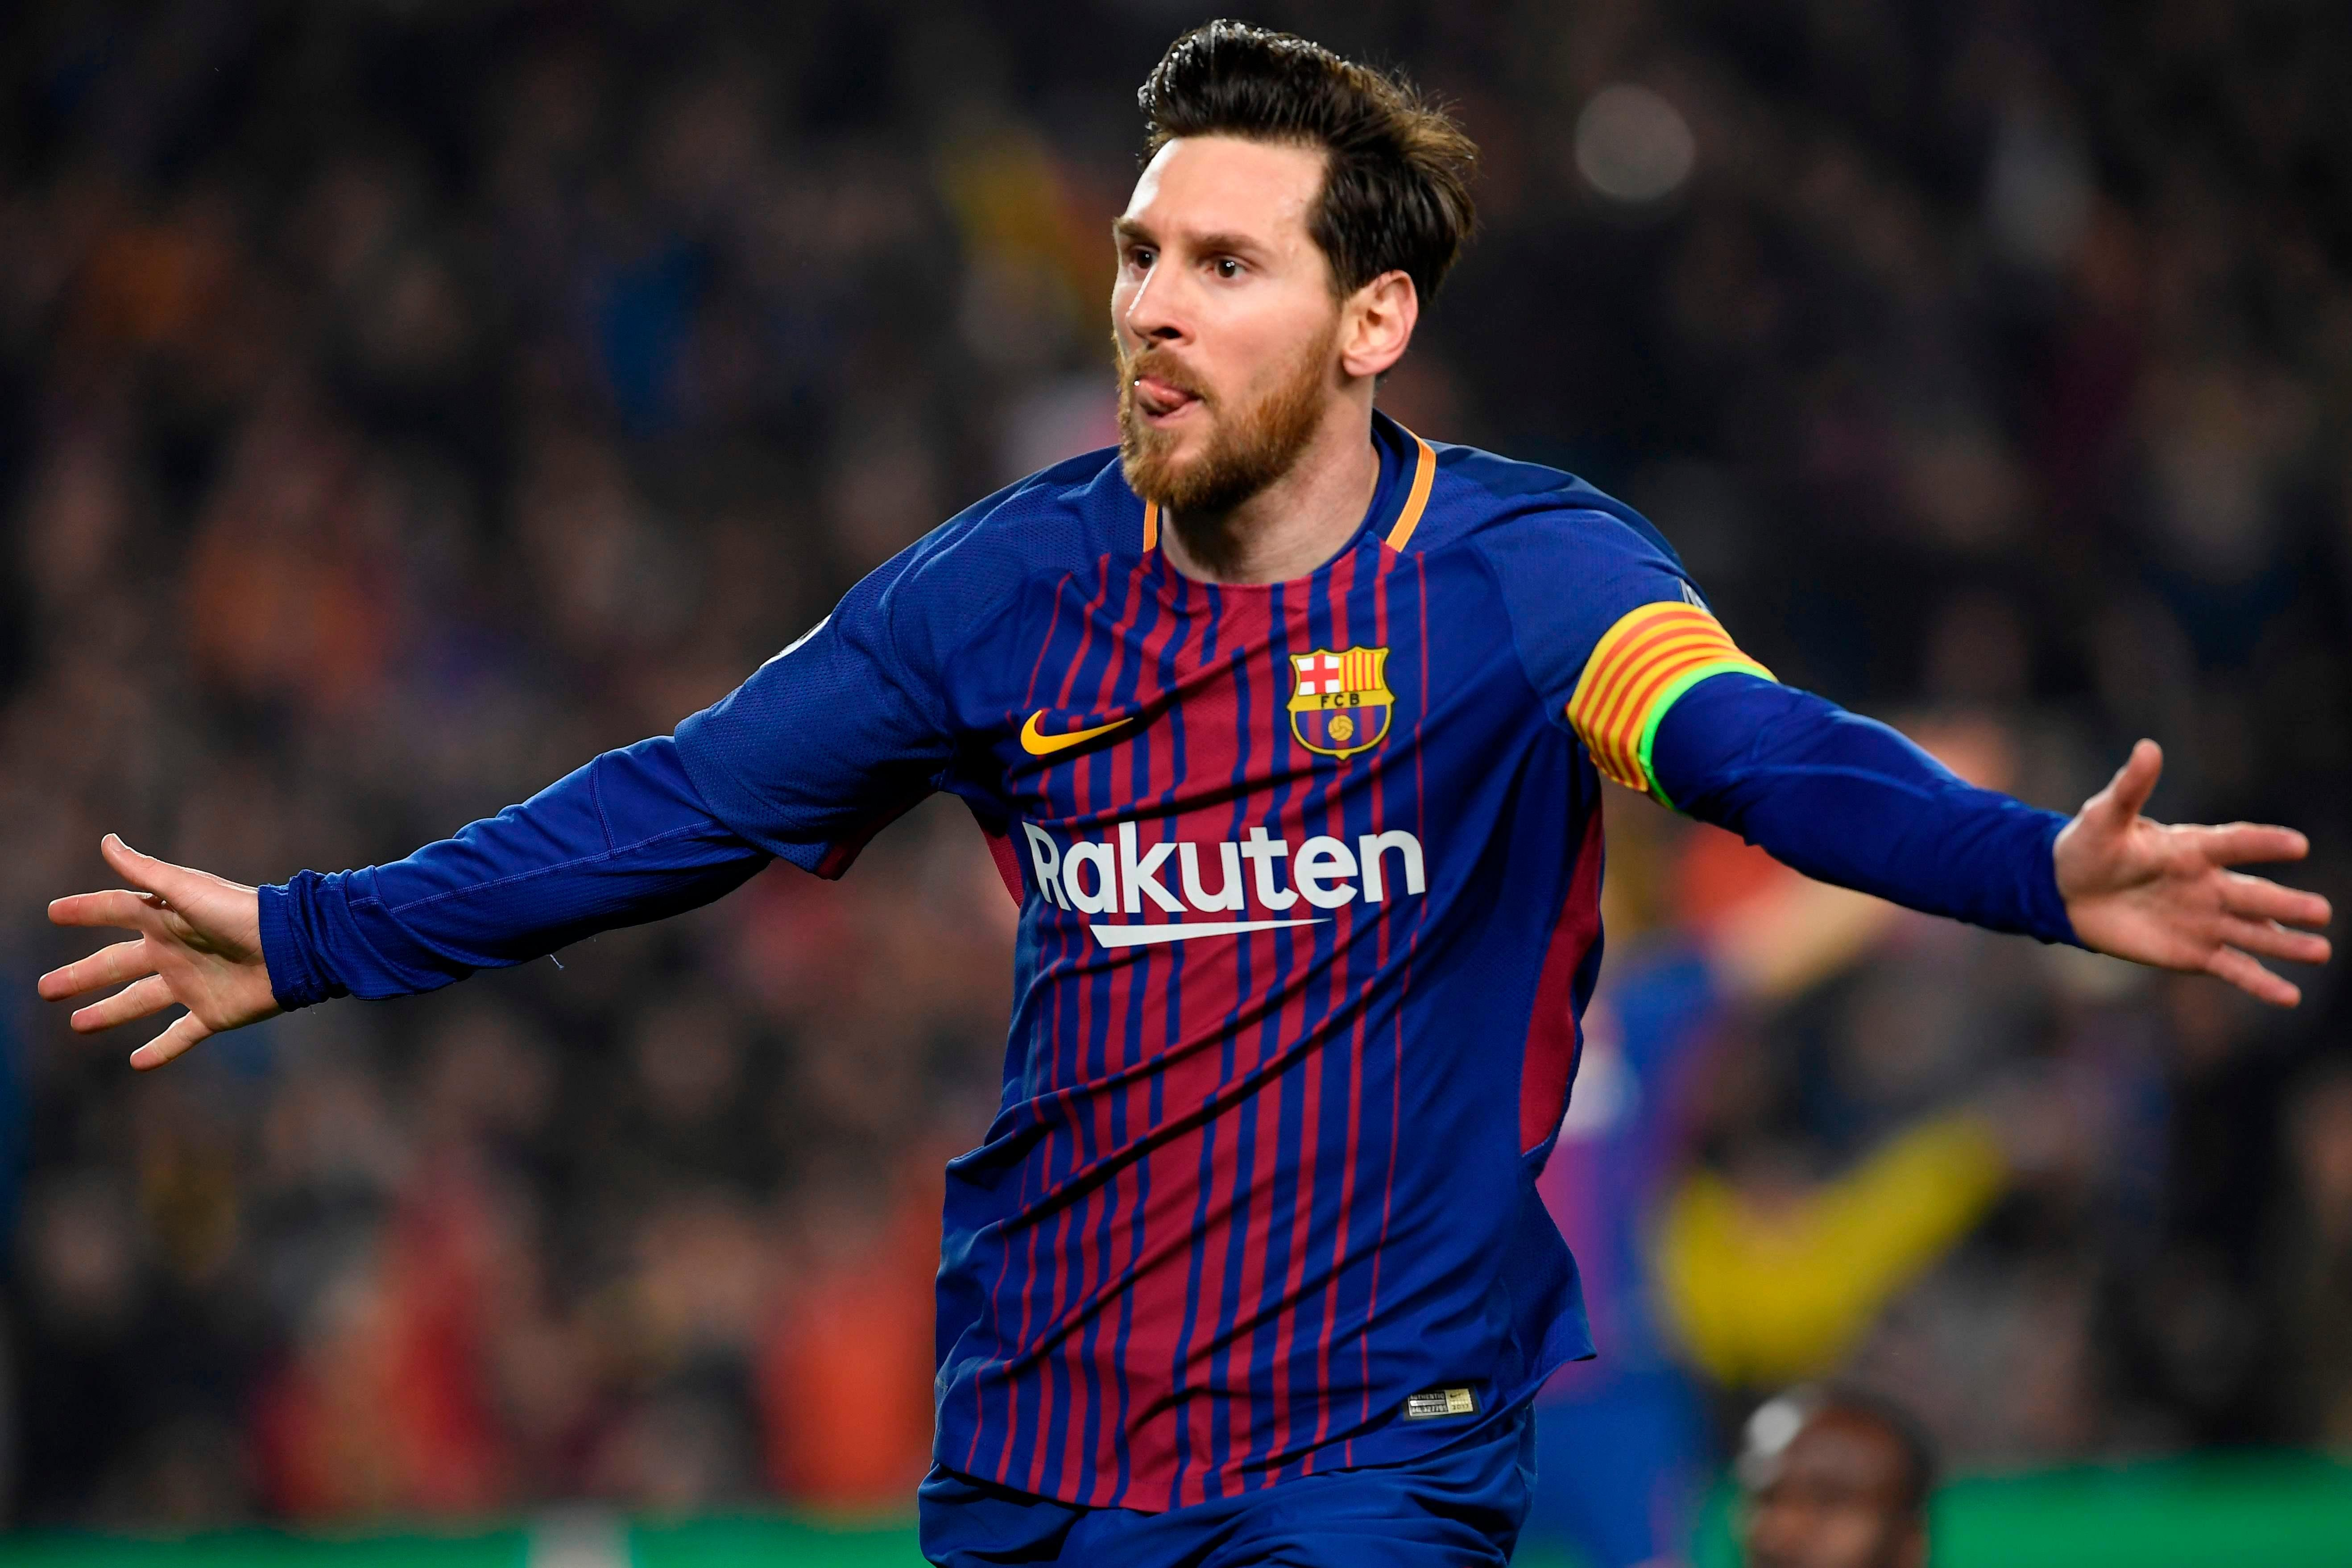 Lionel Messi has scored more goals since 2010 than Stoke